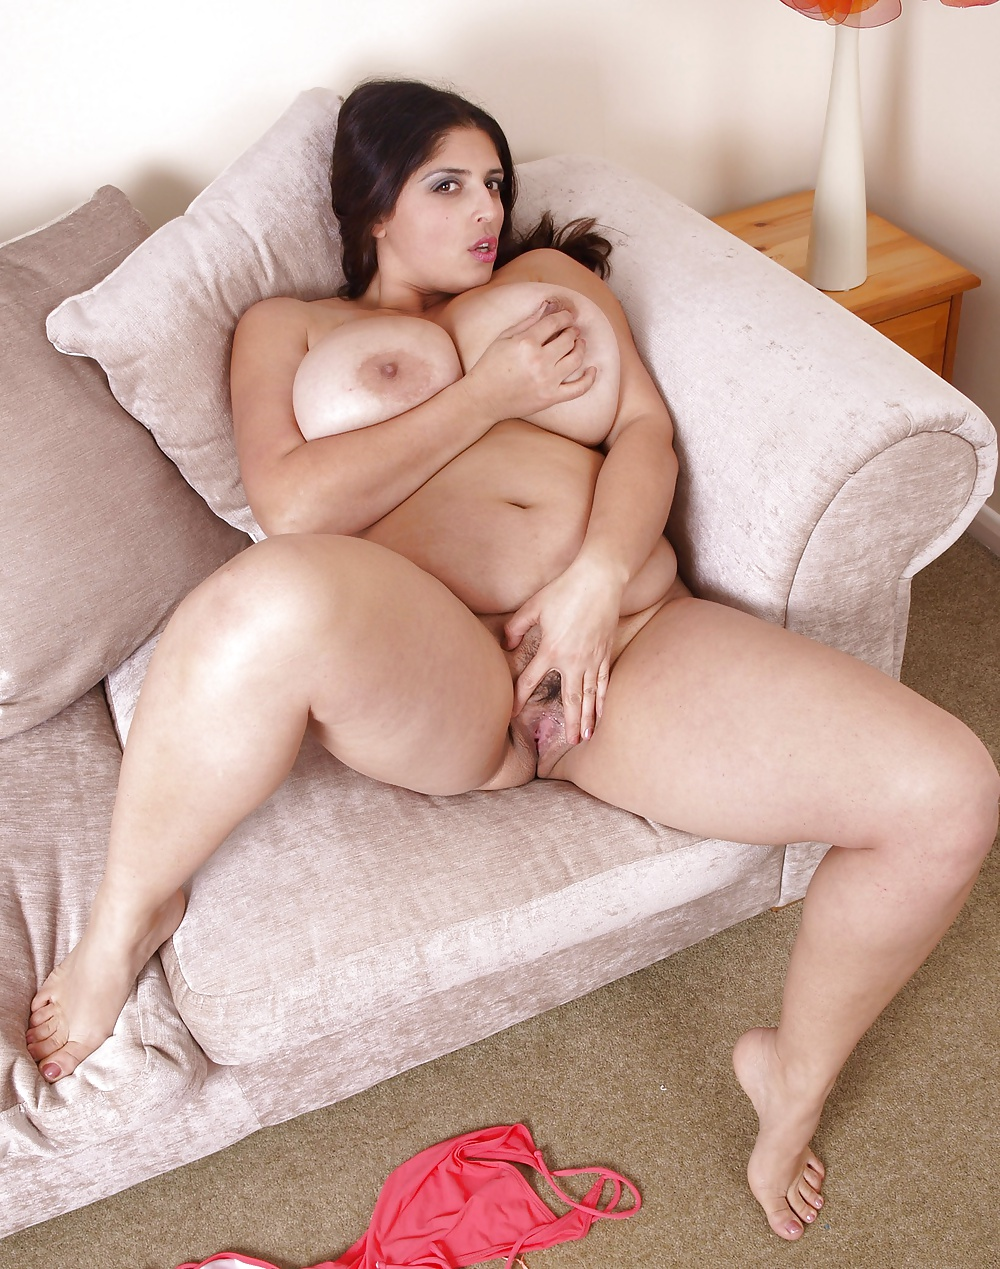 Kerry Marie Nude Adult Model Search